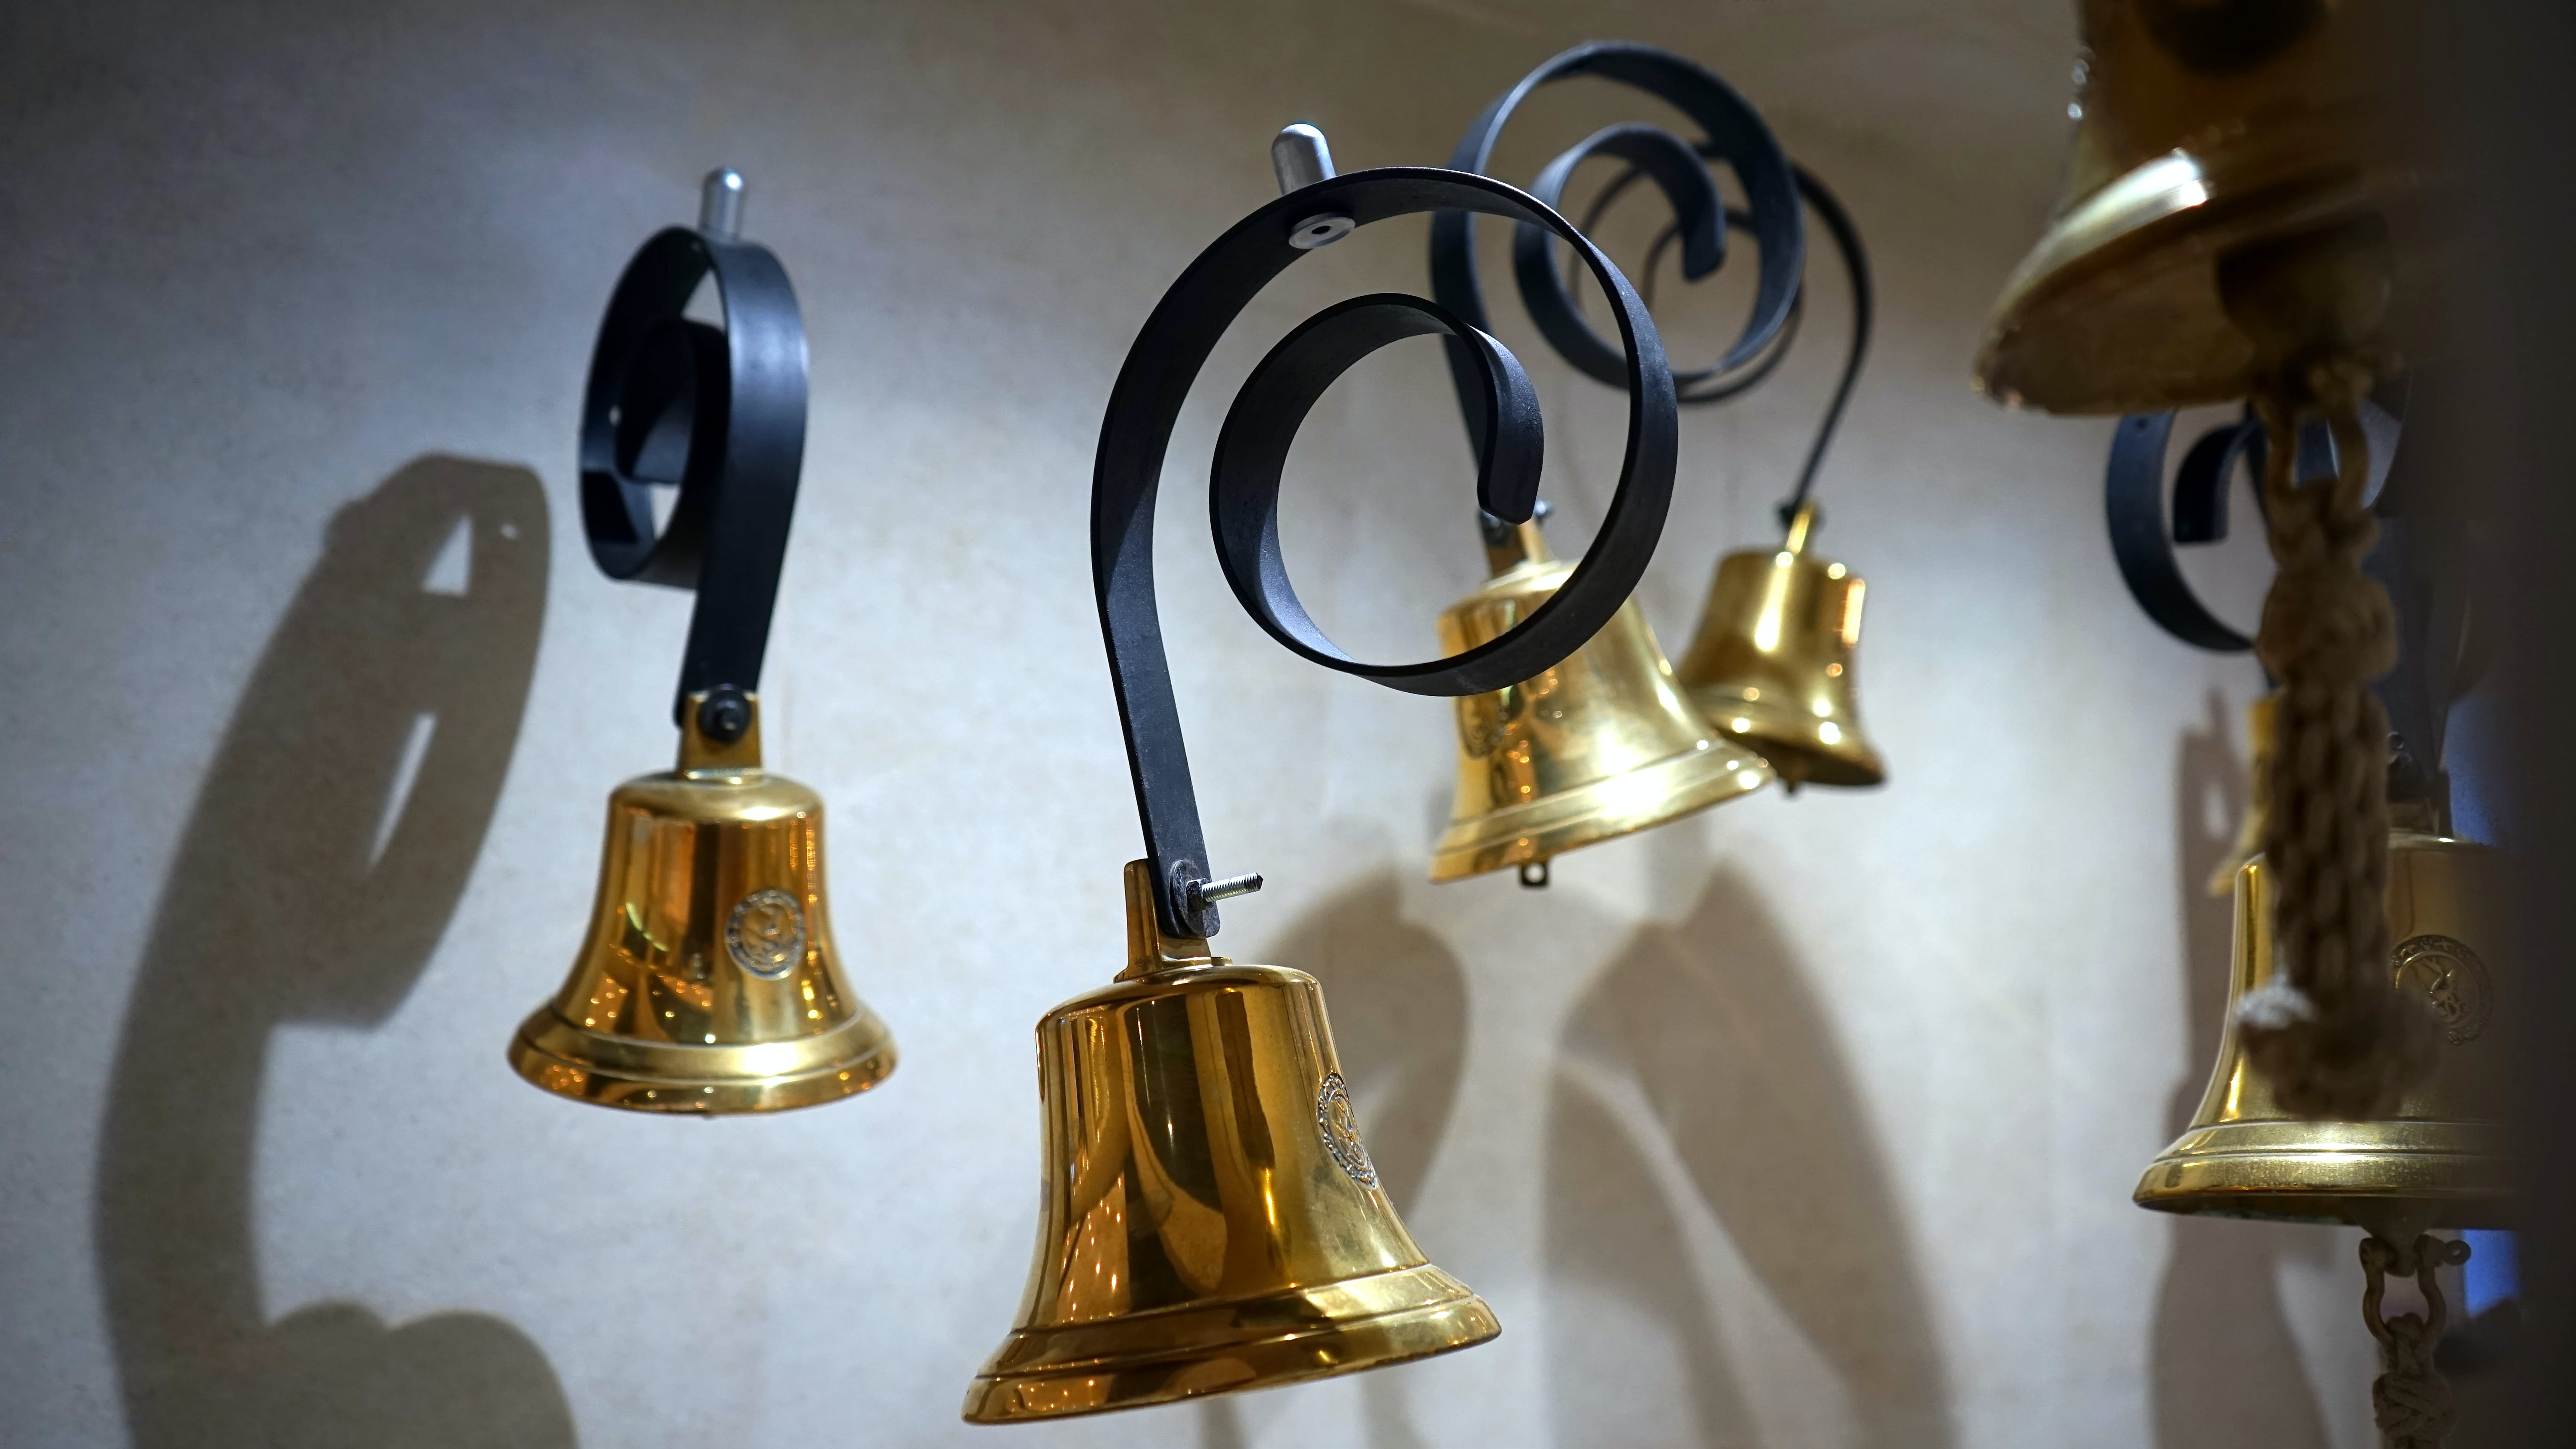 Gold-colored and Black Hanging Bells Near Wall